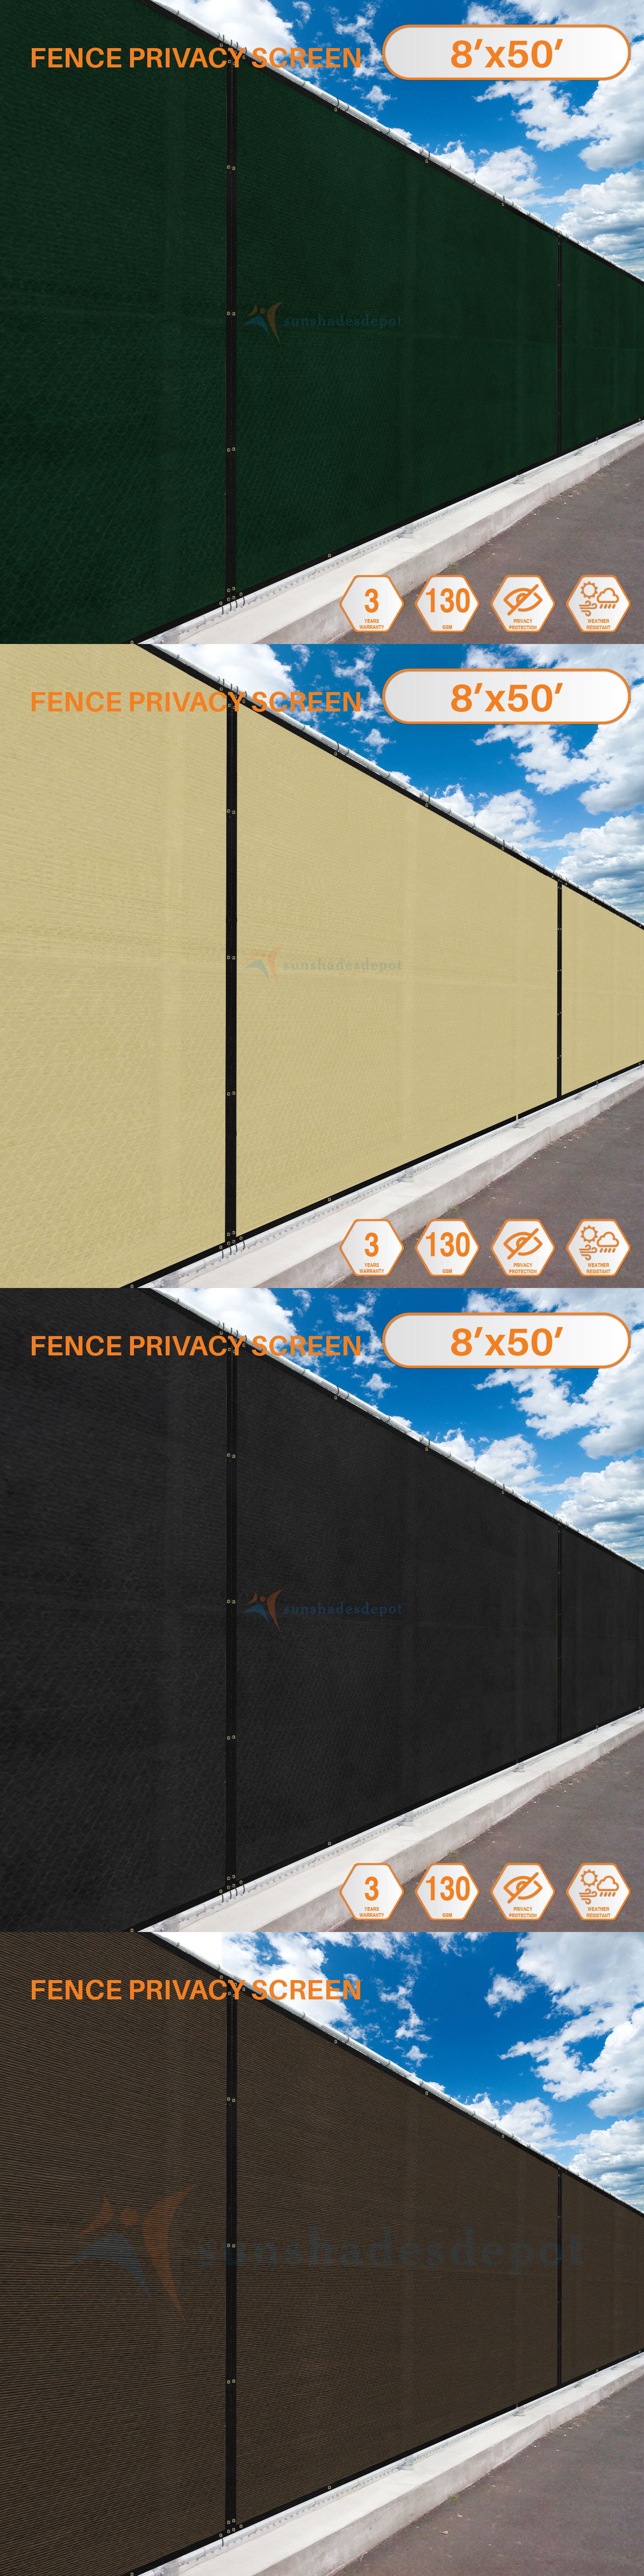 Privacy Screens Windscreens 180991: 8 X50 Ft Fence Privacy Screen ...